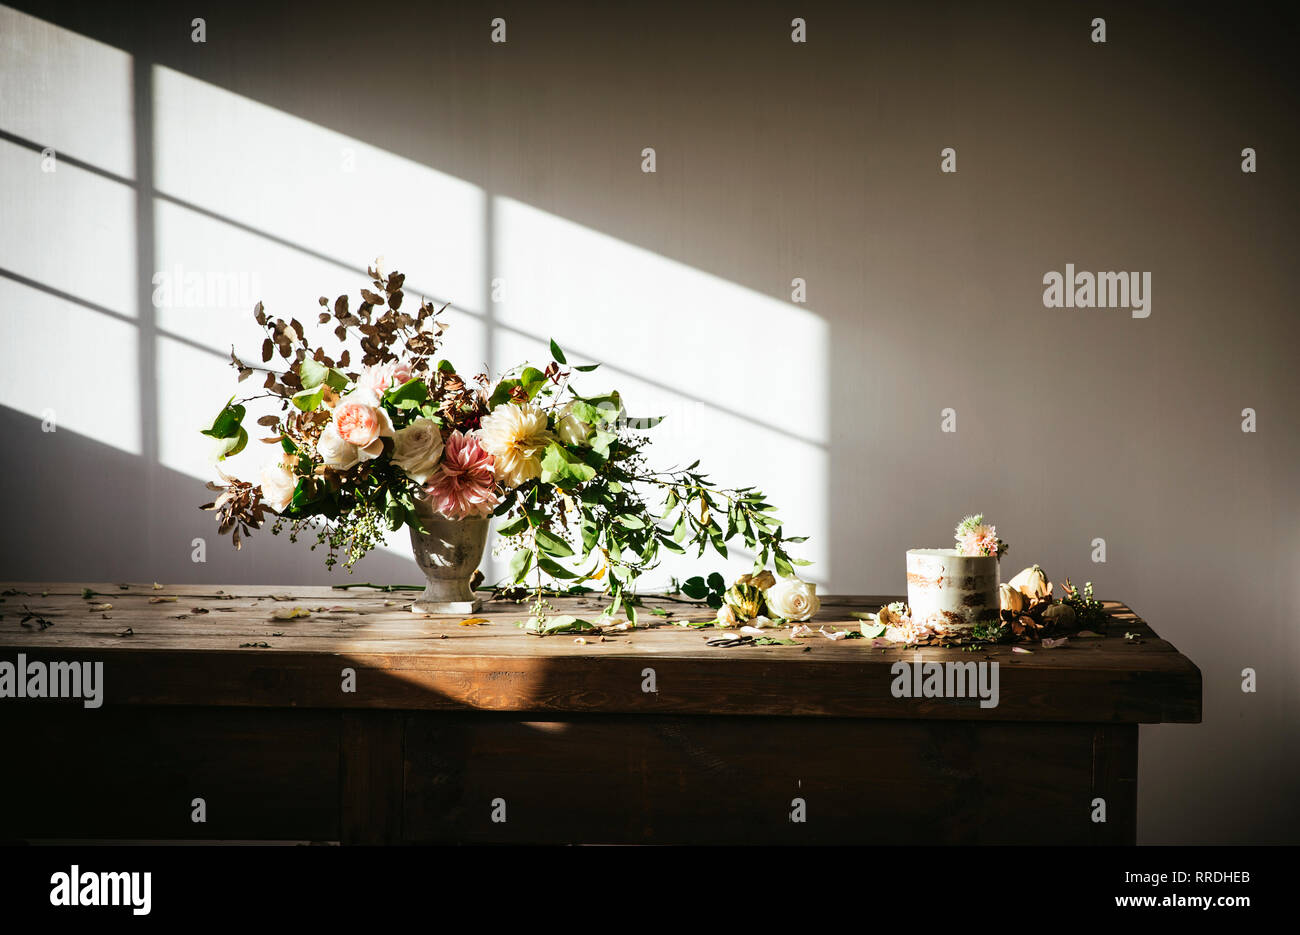 dish with tasty cake decorated bloom bud on wooden table with bunch of chrysanthemums, roses and plant twigs in vase between dry leaves on grey backgr - Stock Image